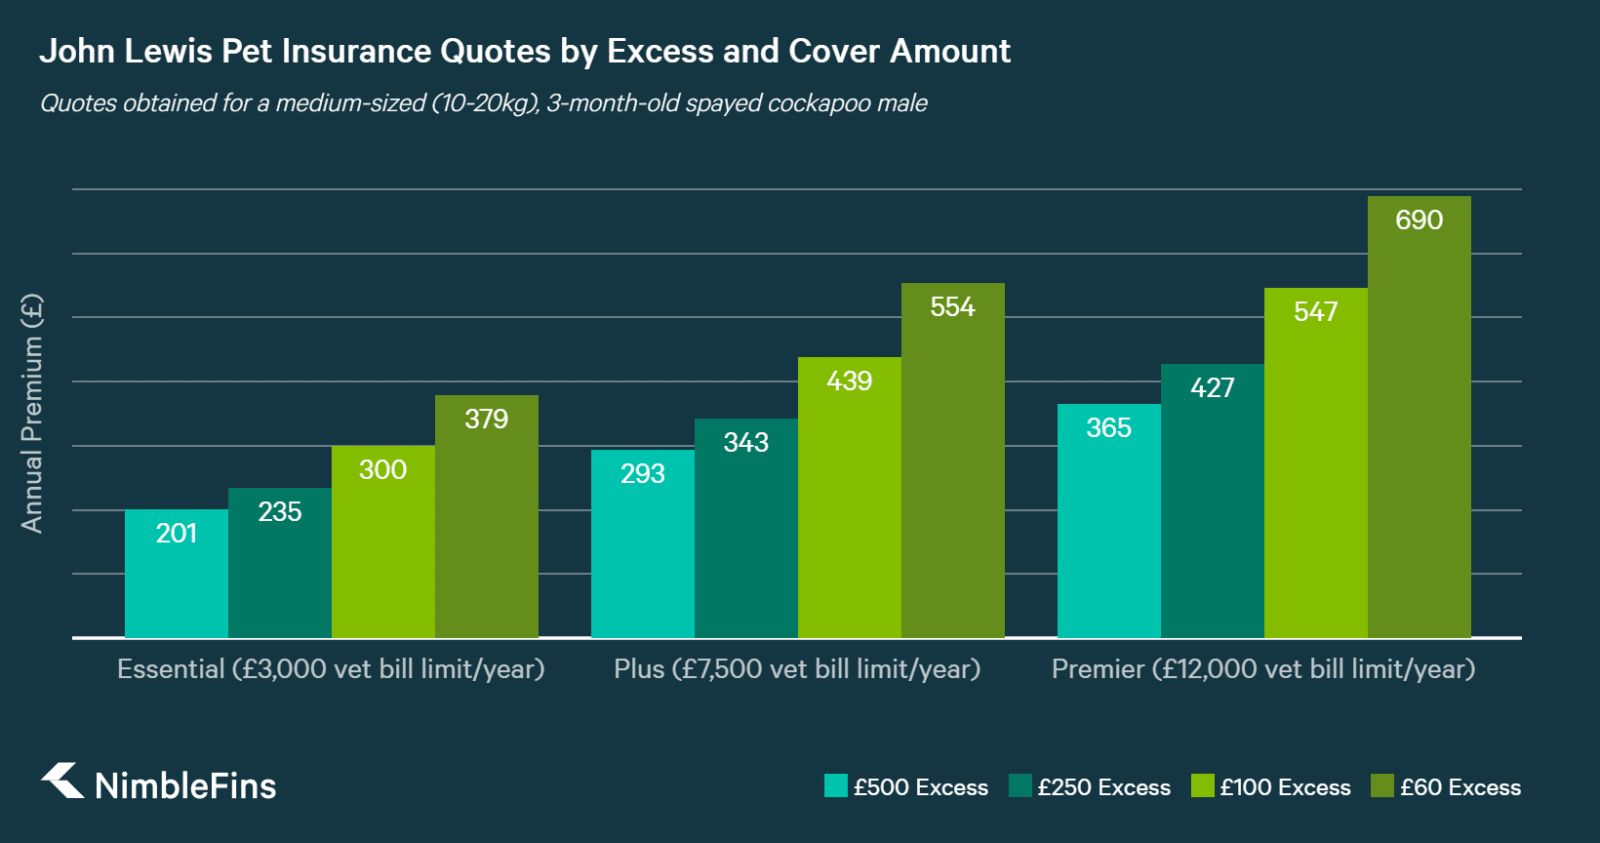 chart showing how john lewis pet insurance quotes vary with excess and cover amount